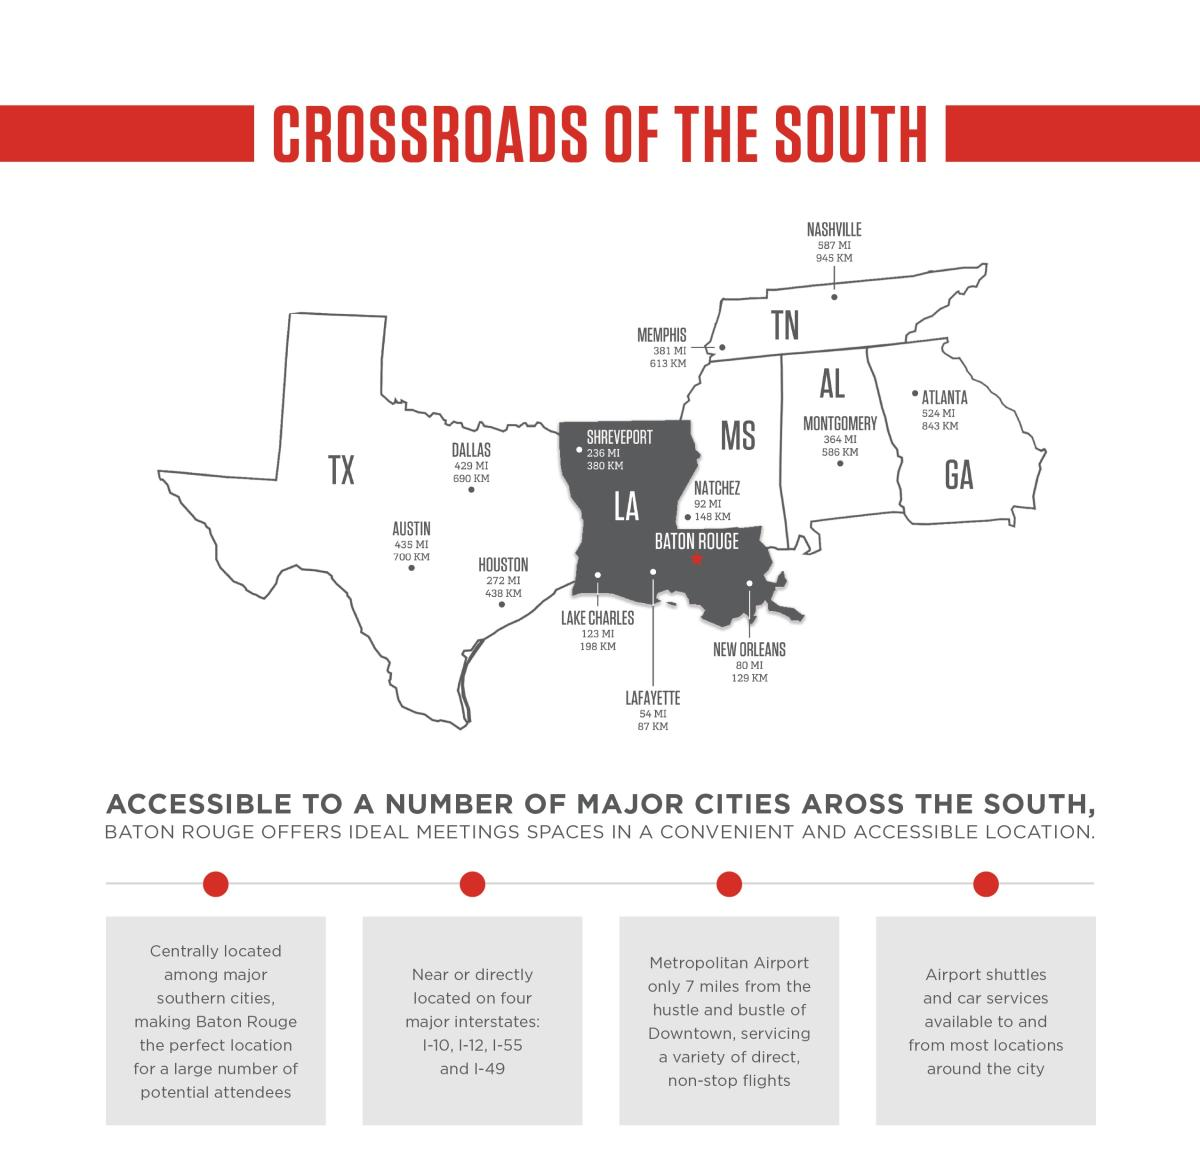 Crossroads of the South